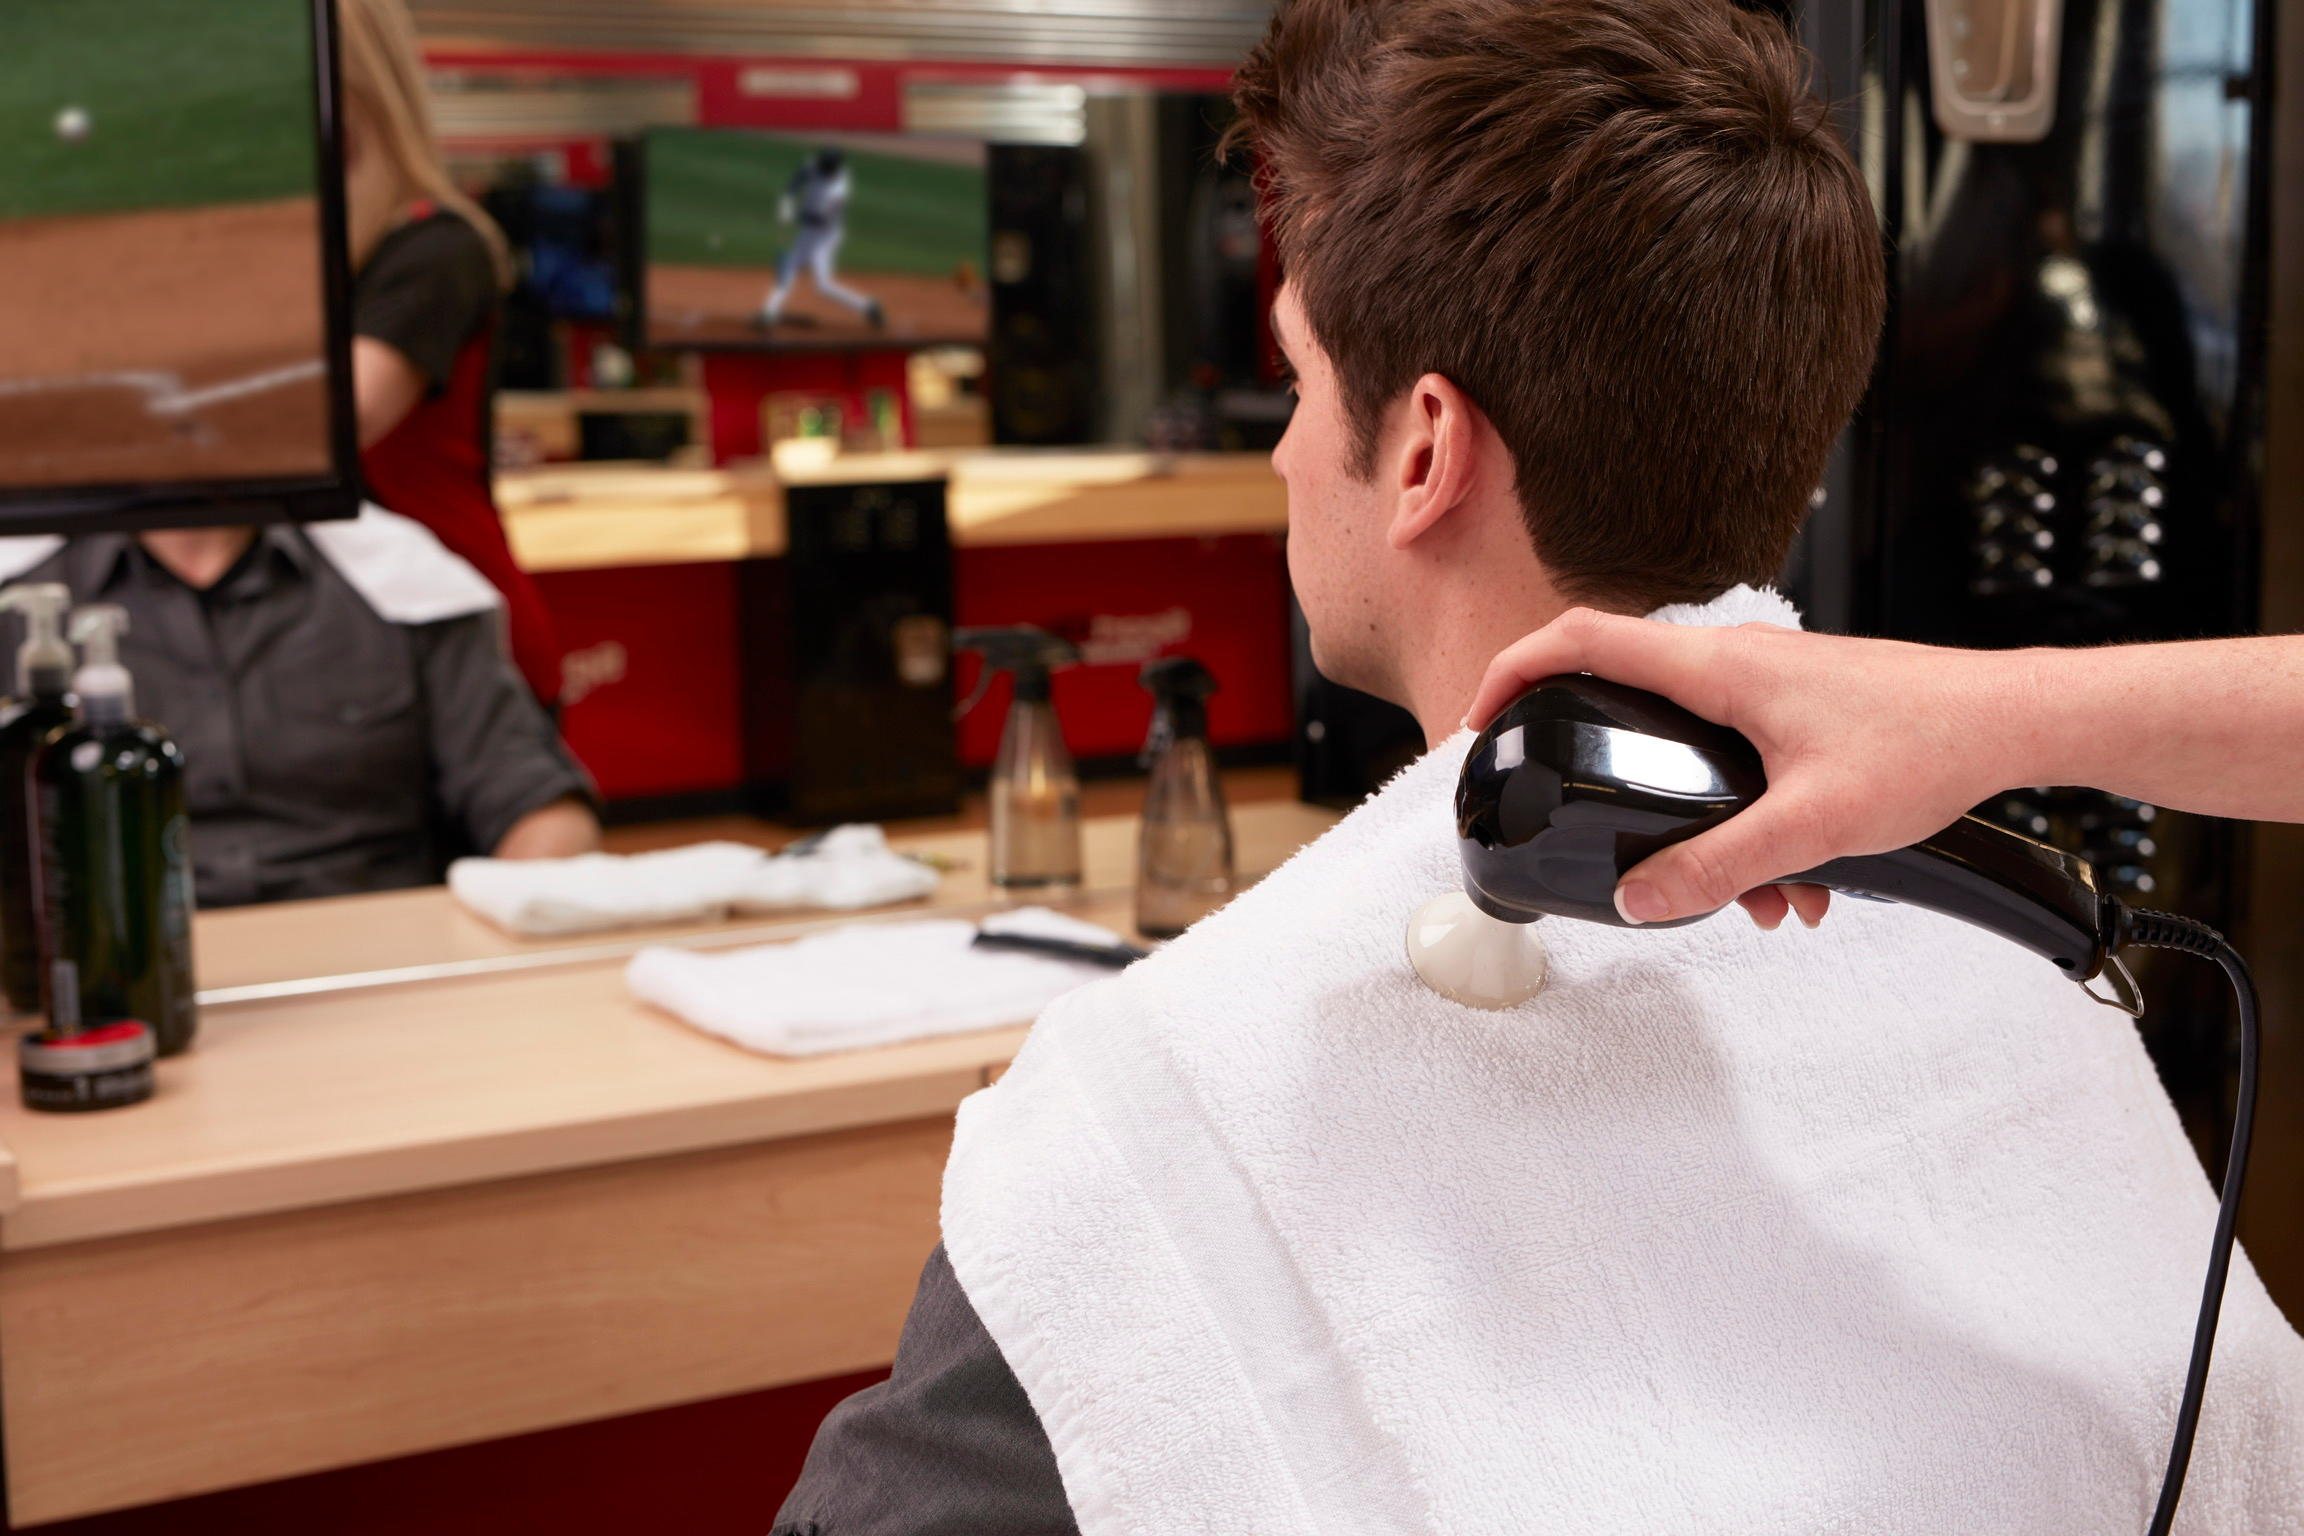 Sport Clips Haircuts of East Brunswick image 17